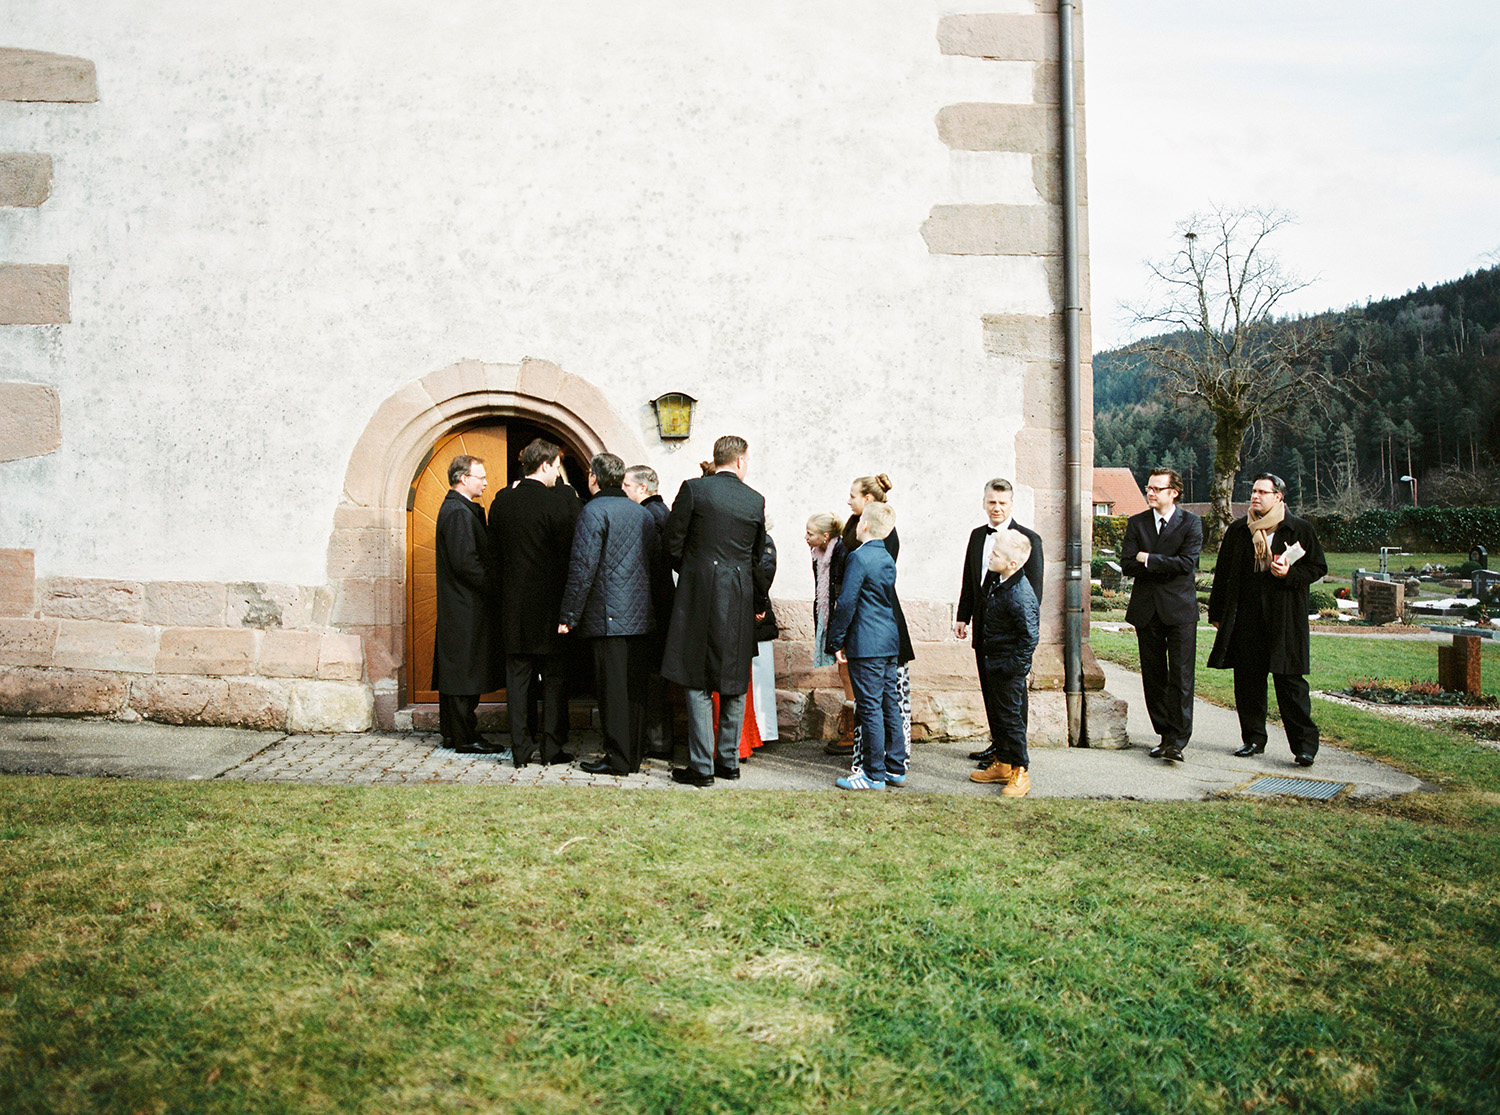 Fotograf Konstanz - Hochzeit Stephanie Stefan Baiersbronn Bareiss Elmar Feuerbacher Photography 23 - Noble winter wedding in Baiersbronn in Bareiss  - 97 -